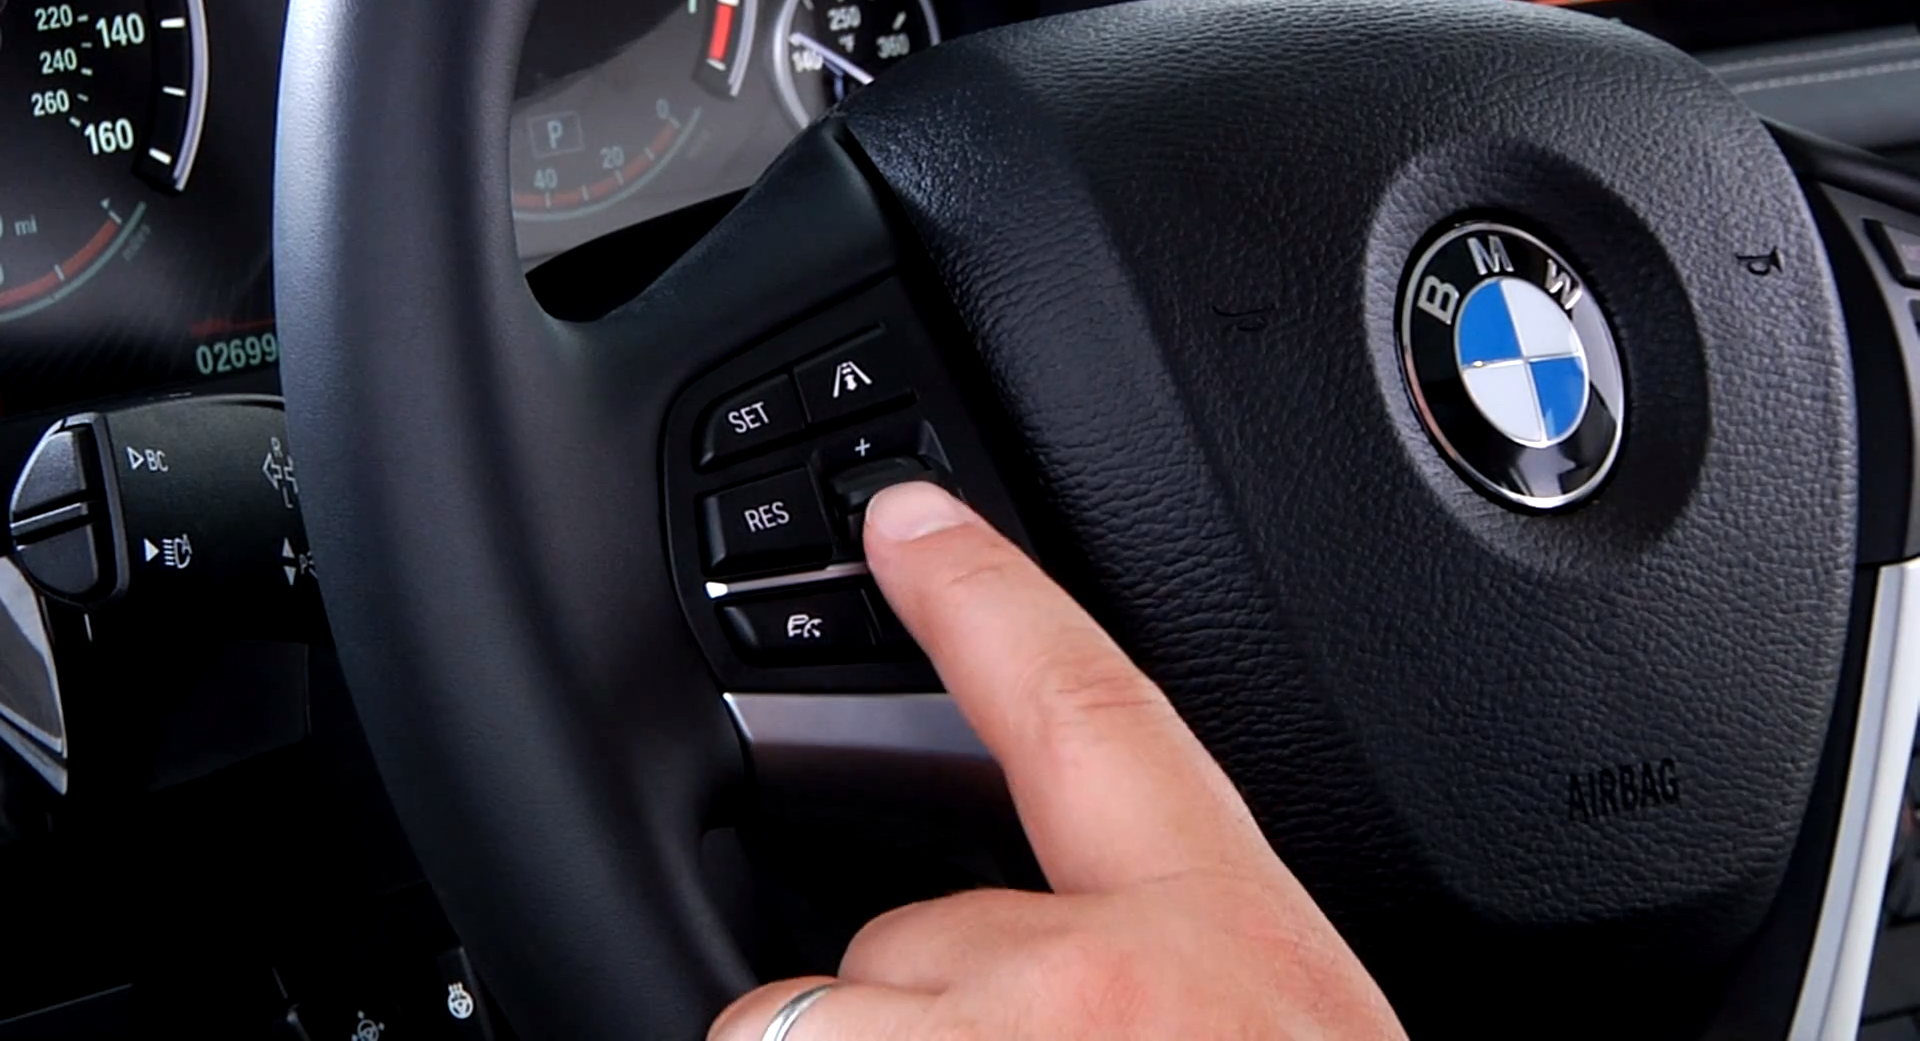 2014 Bmw F15 X5 Cruise Control Buttons Guide Autoevolution